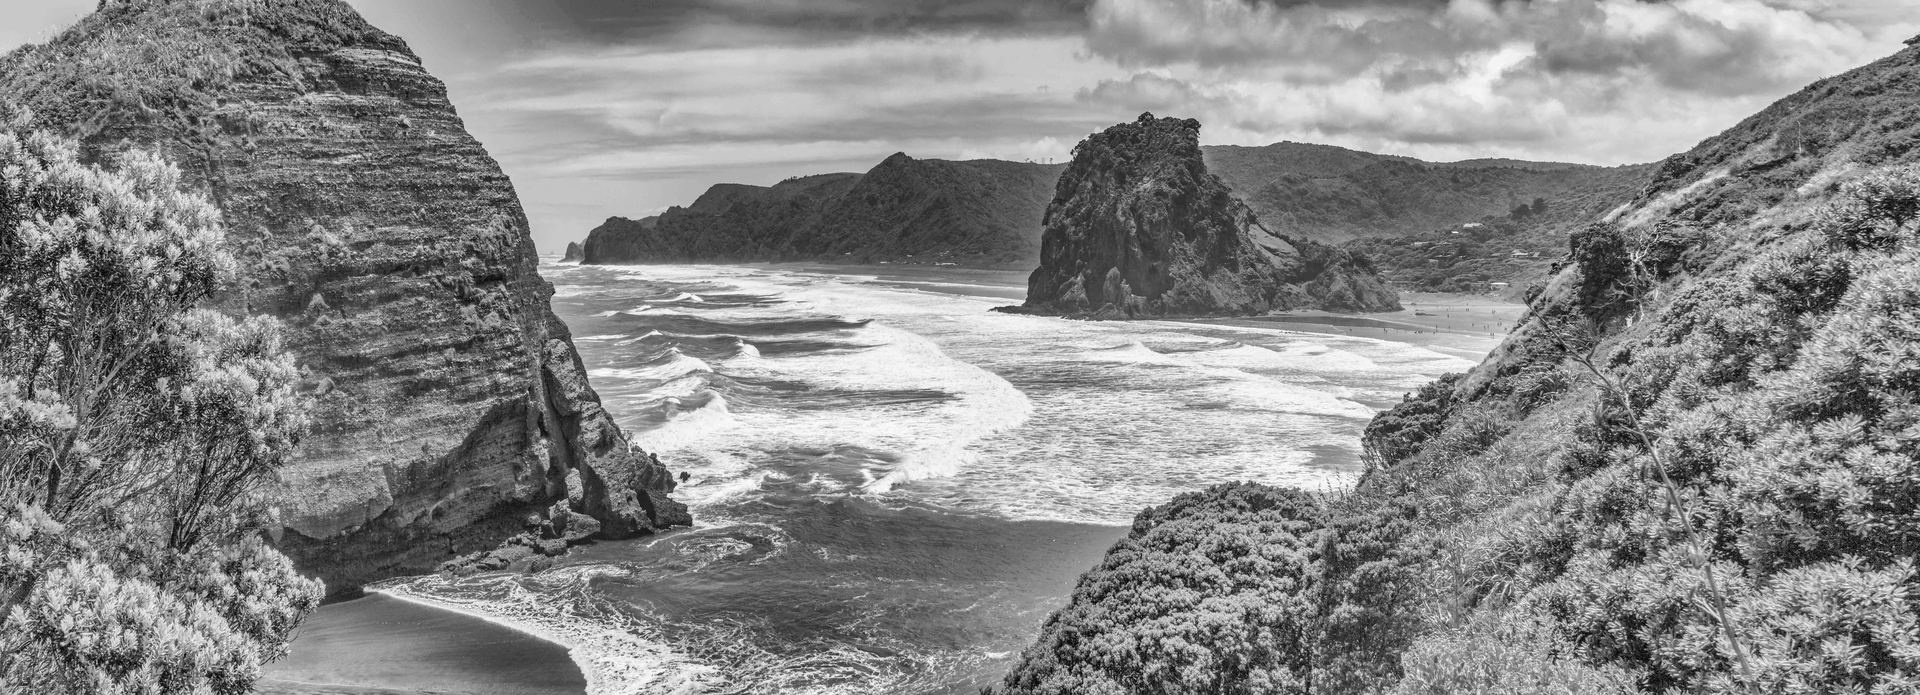 Piha black and white